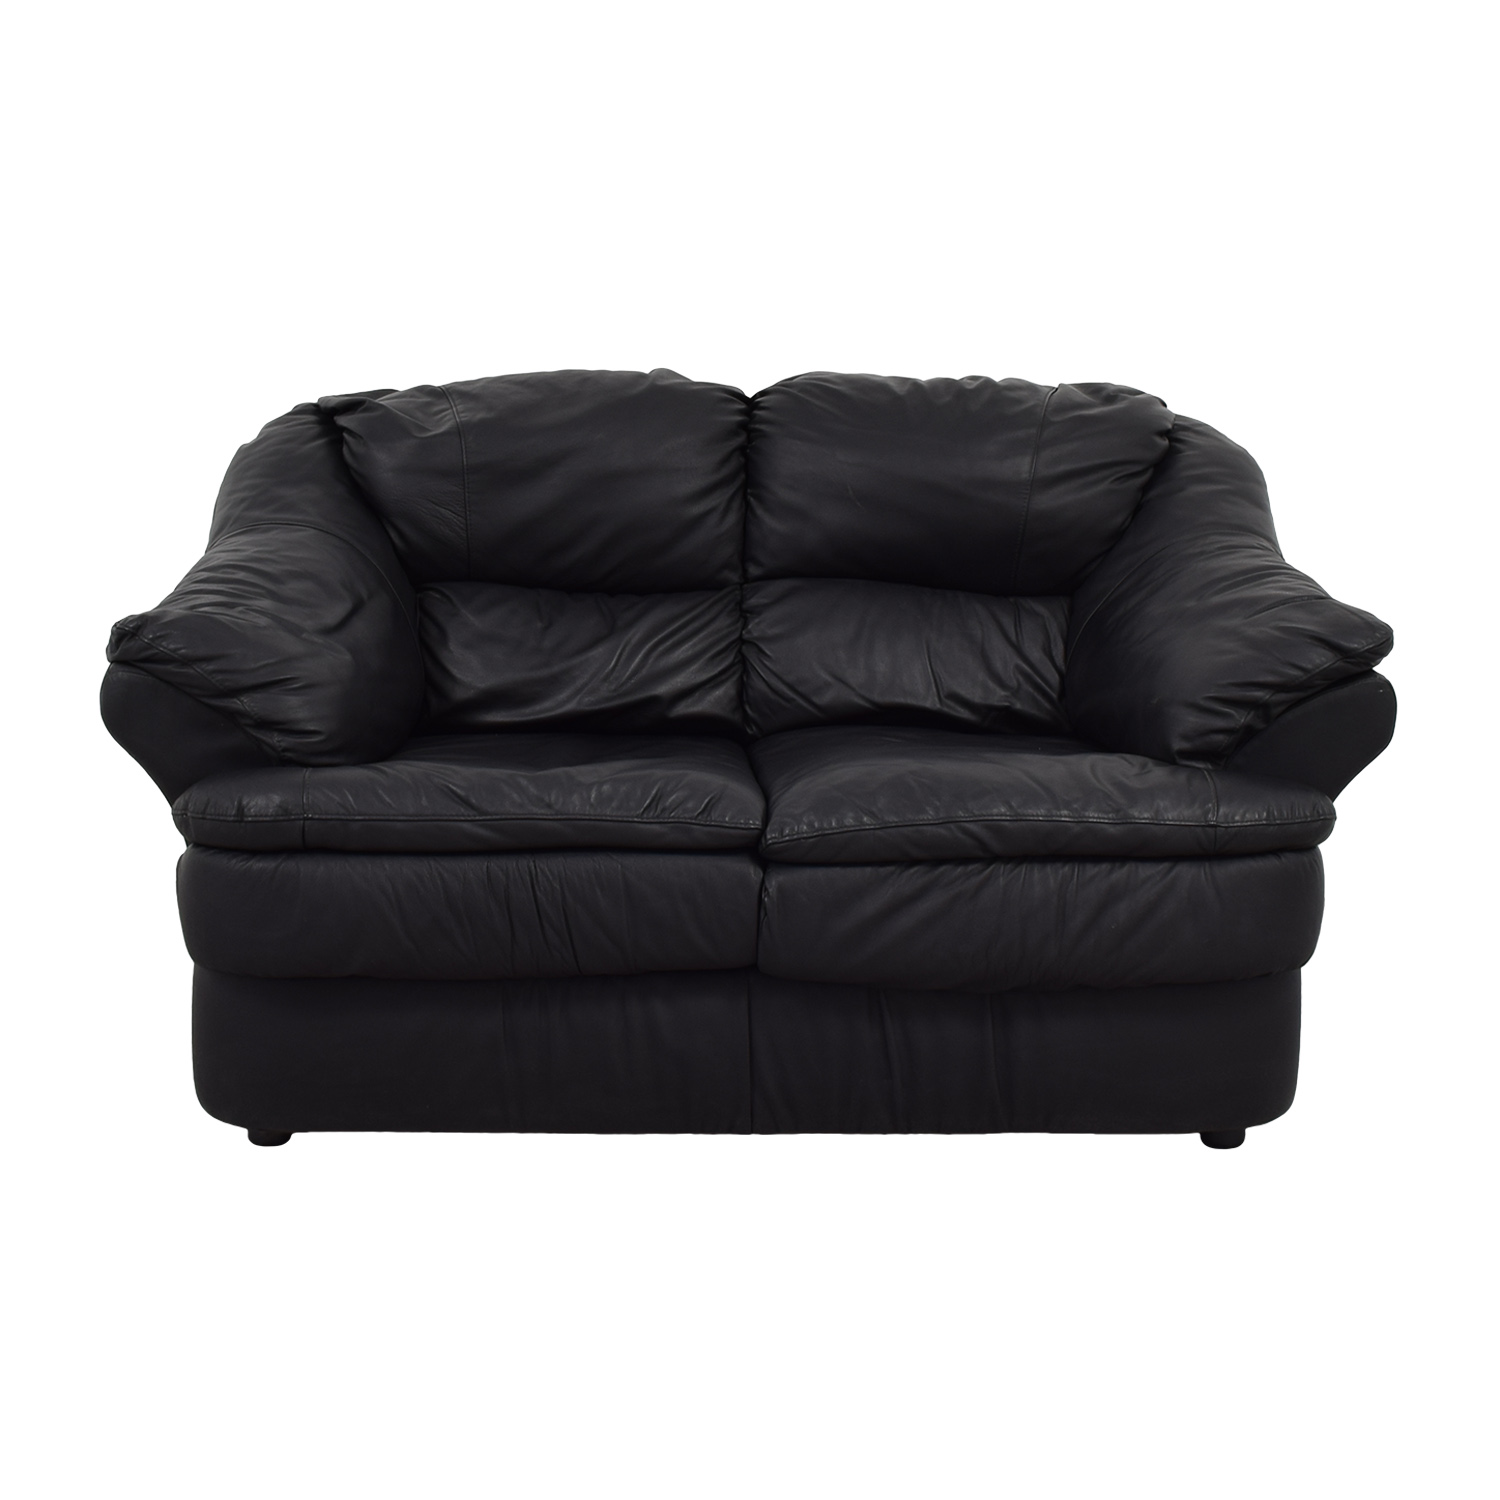 Italian Leather Black Loveseat Loveseats